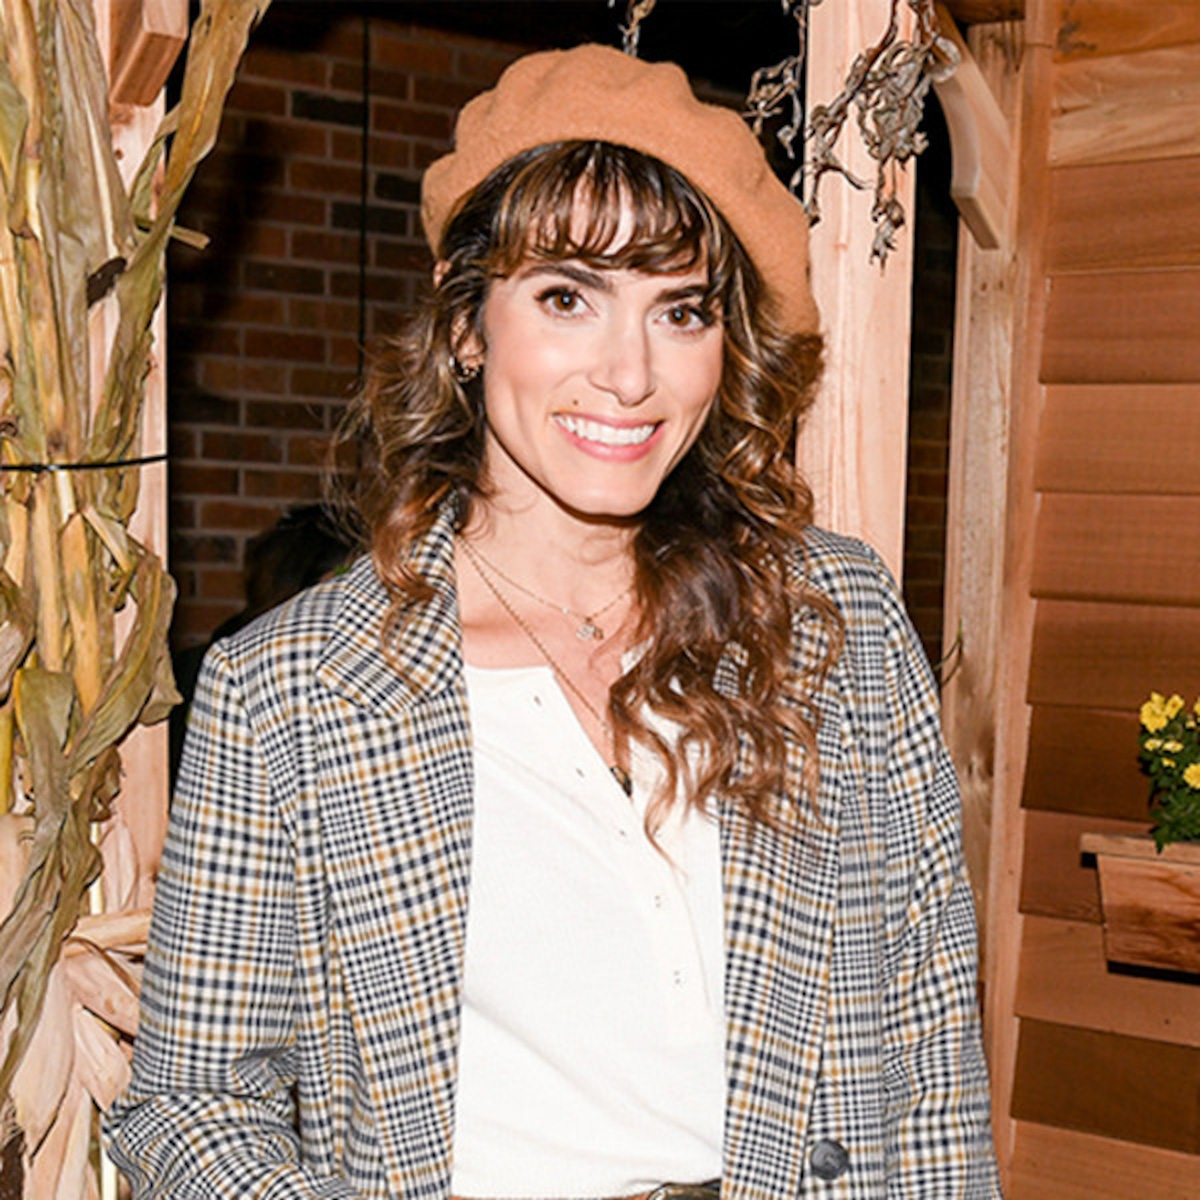 eye Pessimist Foreword  Nikki Reed Explains Why She's So ''Fulfilled'' in Family and ...